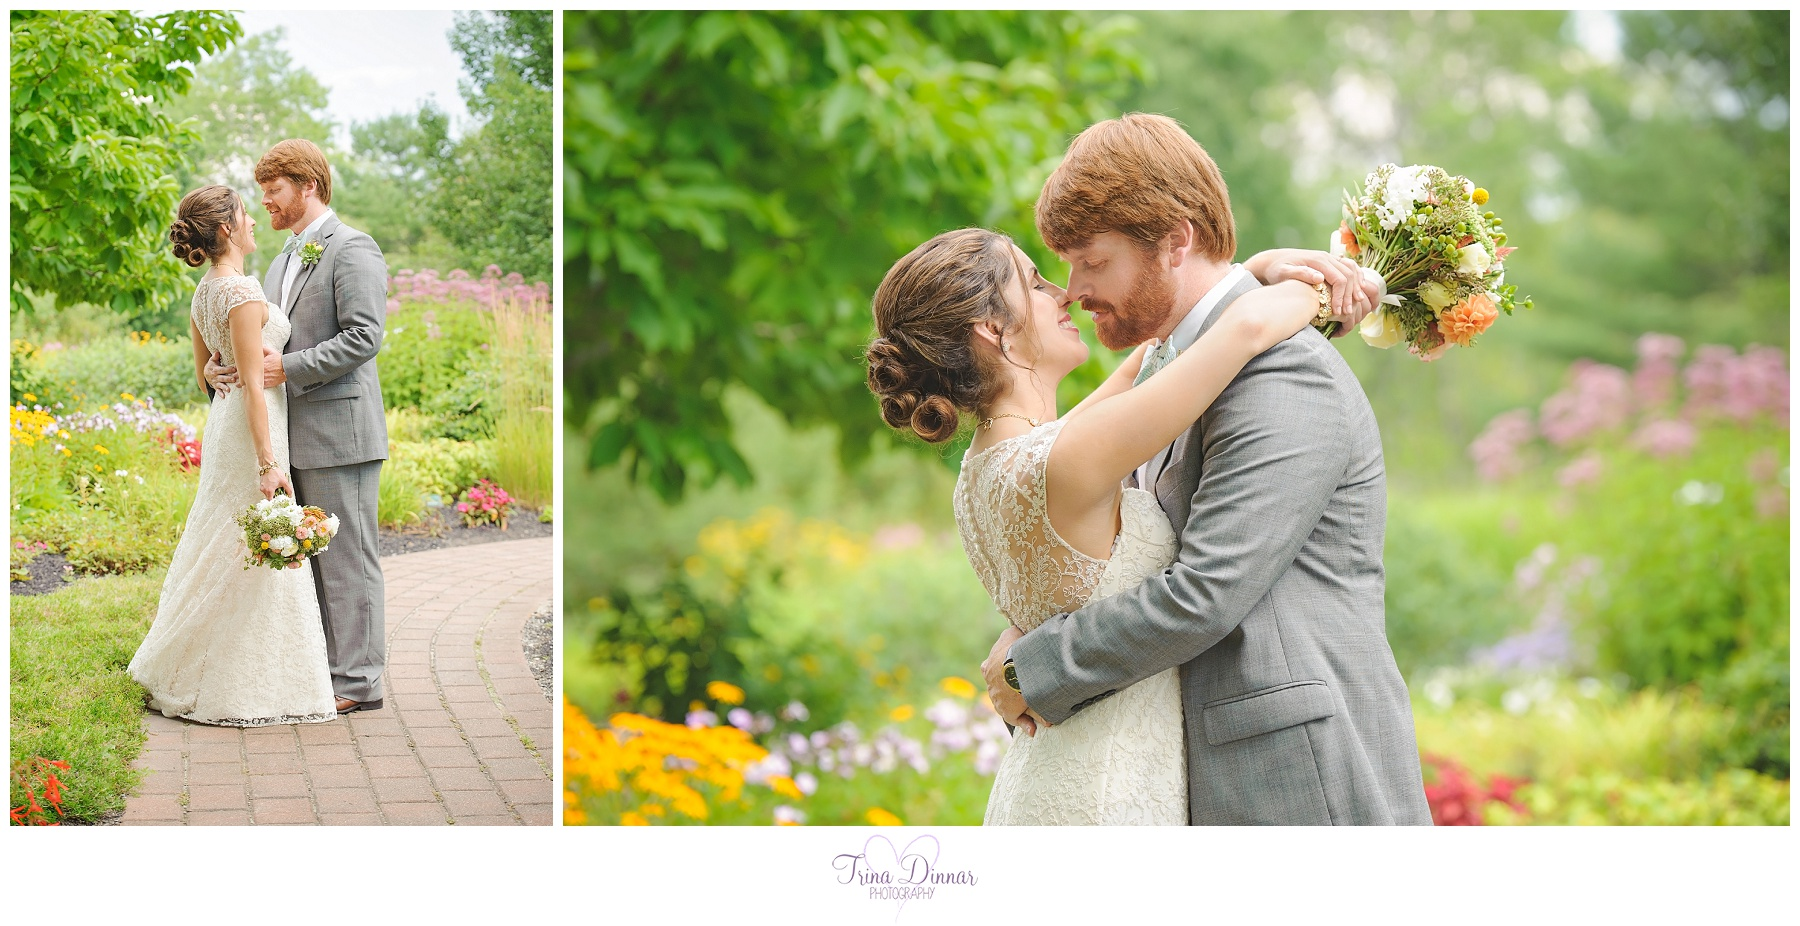 Pineland Farms weddings by Trina Dinnar Photography